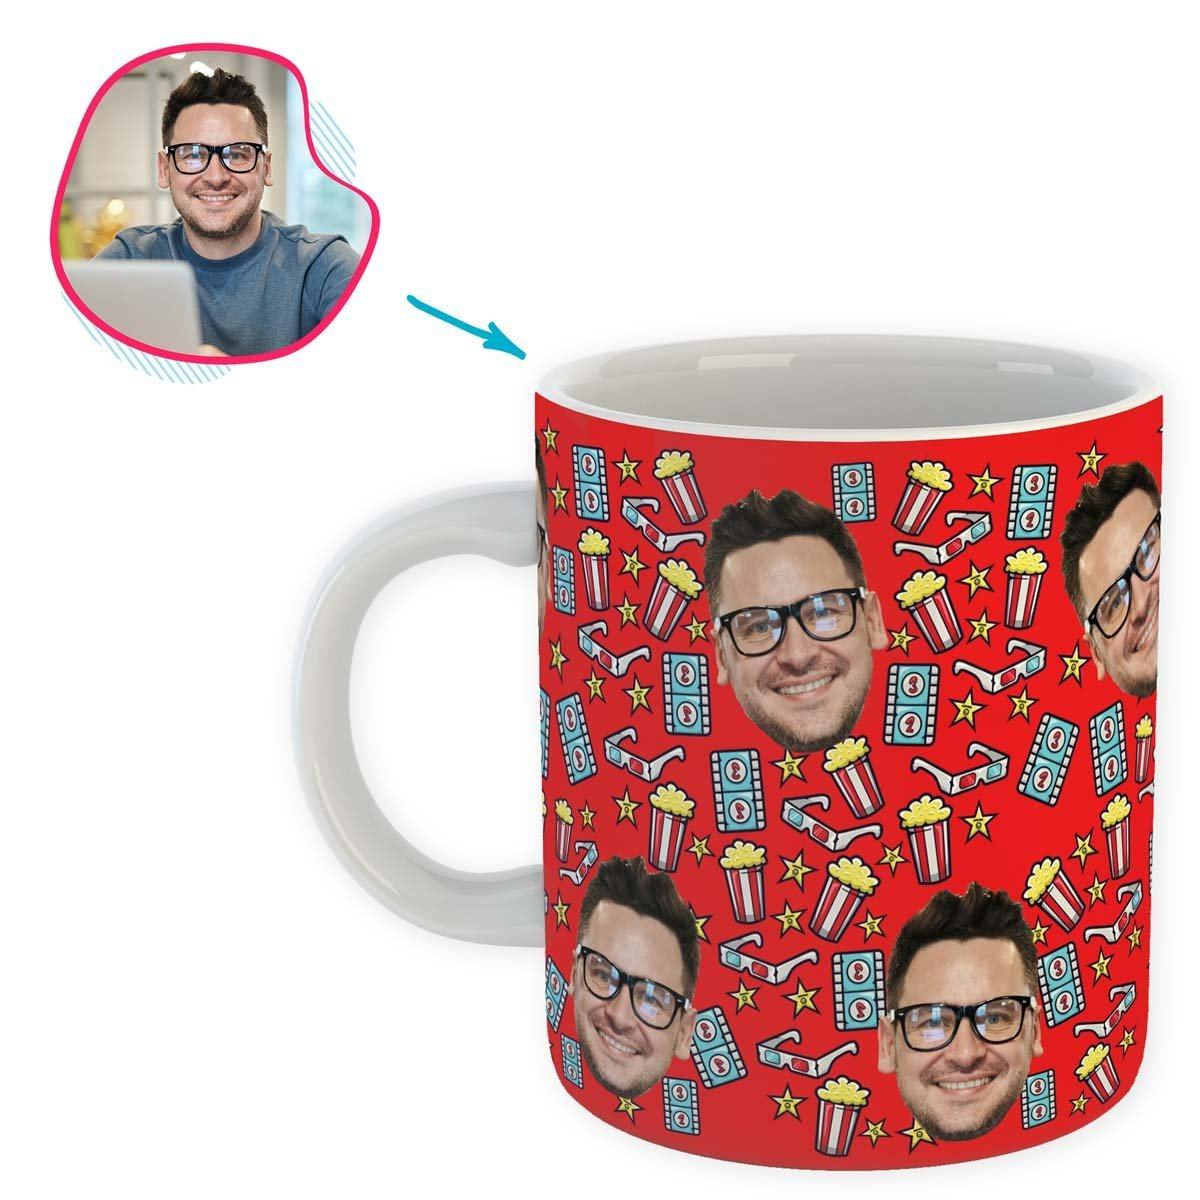 red Movie mug personalized with photo of face printed on it